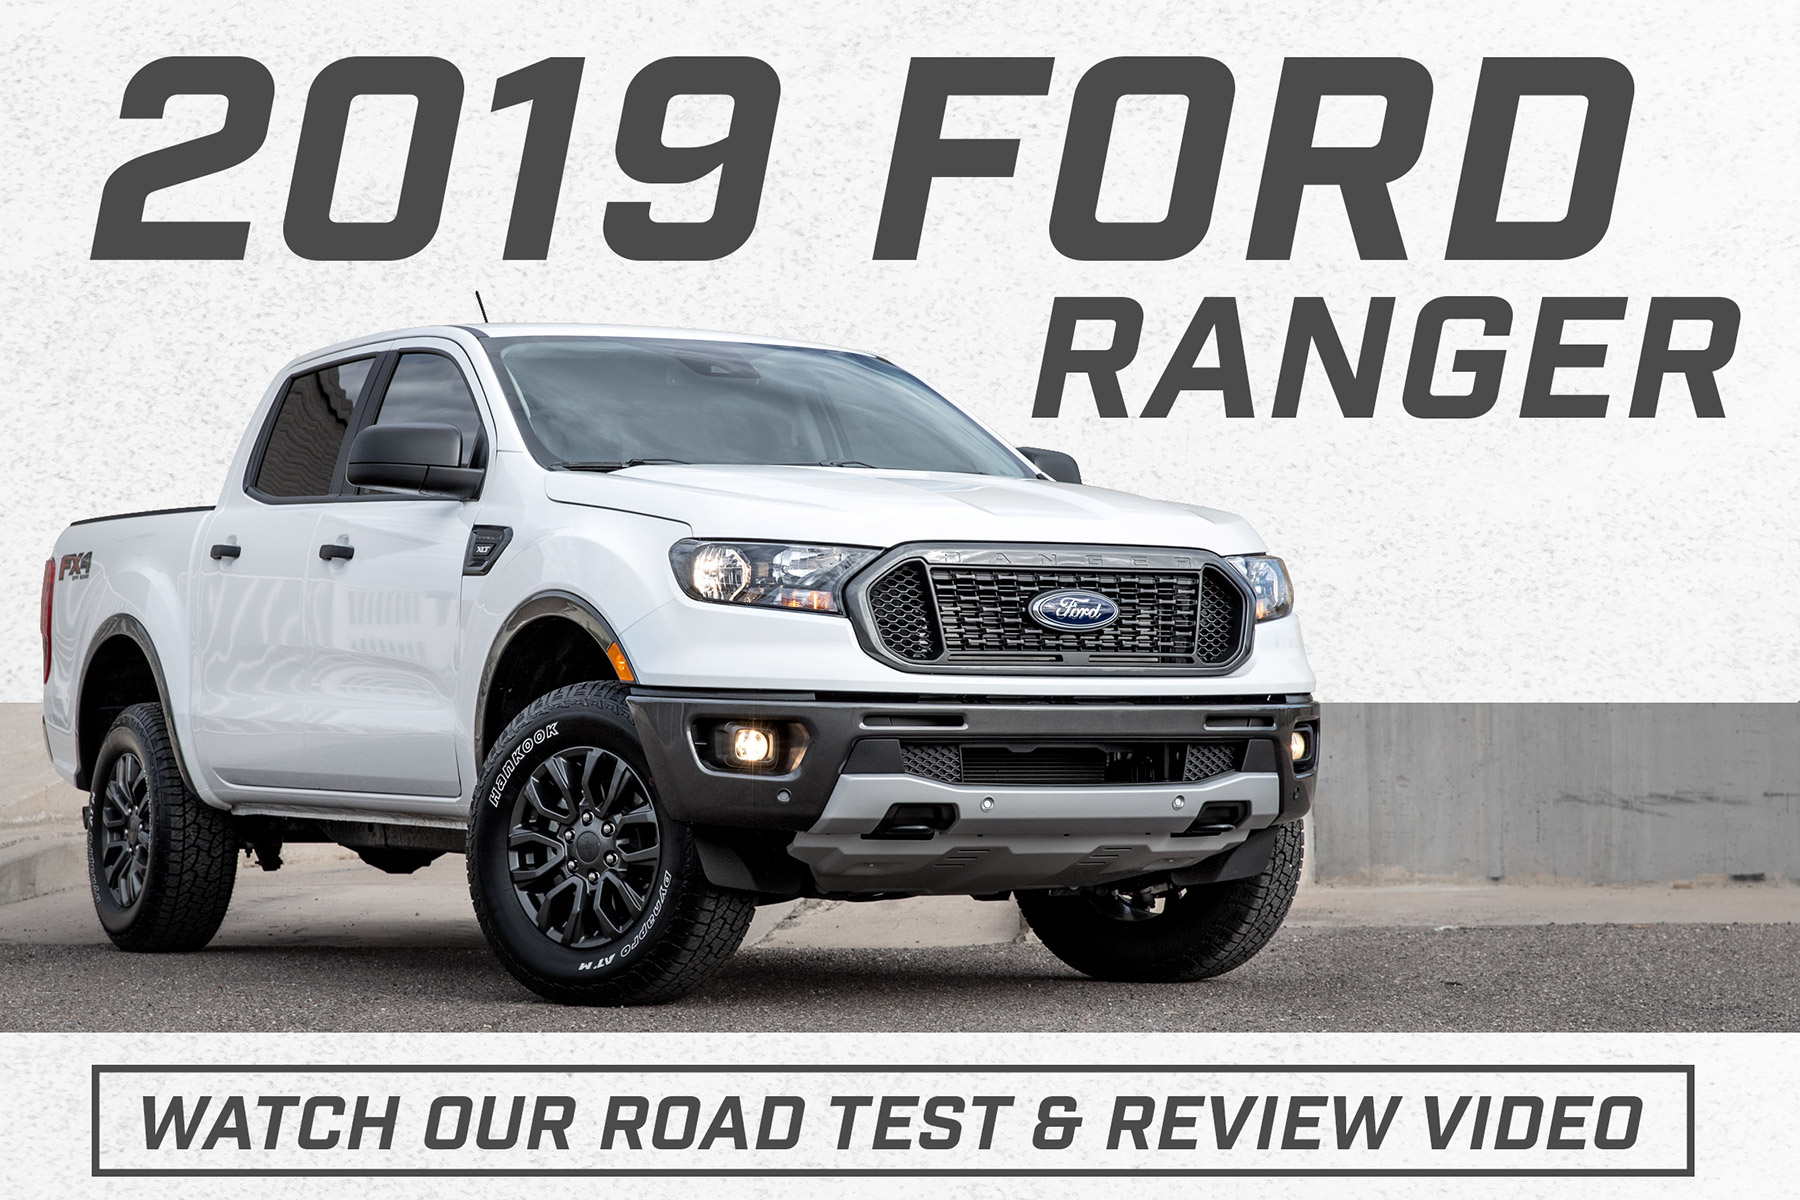 Stage 3's 2019 Ranger Overview and Driving Review Video!